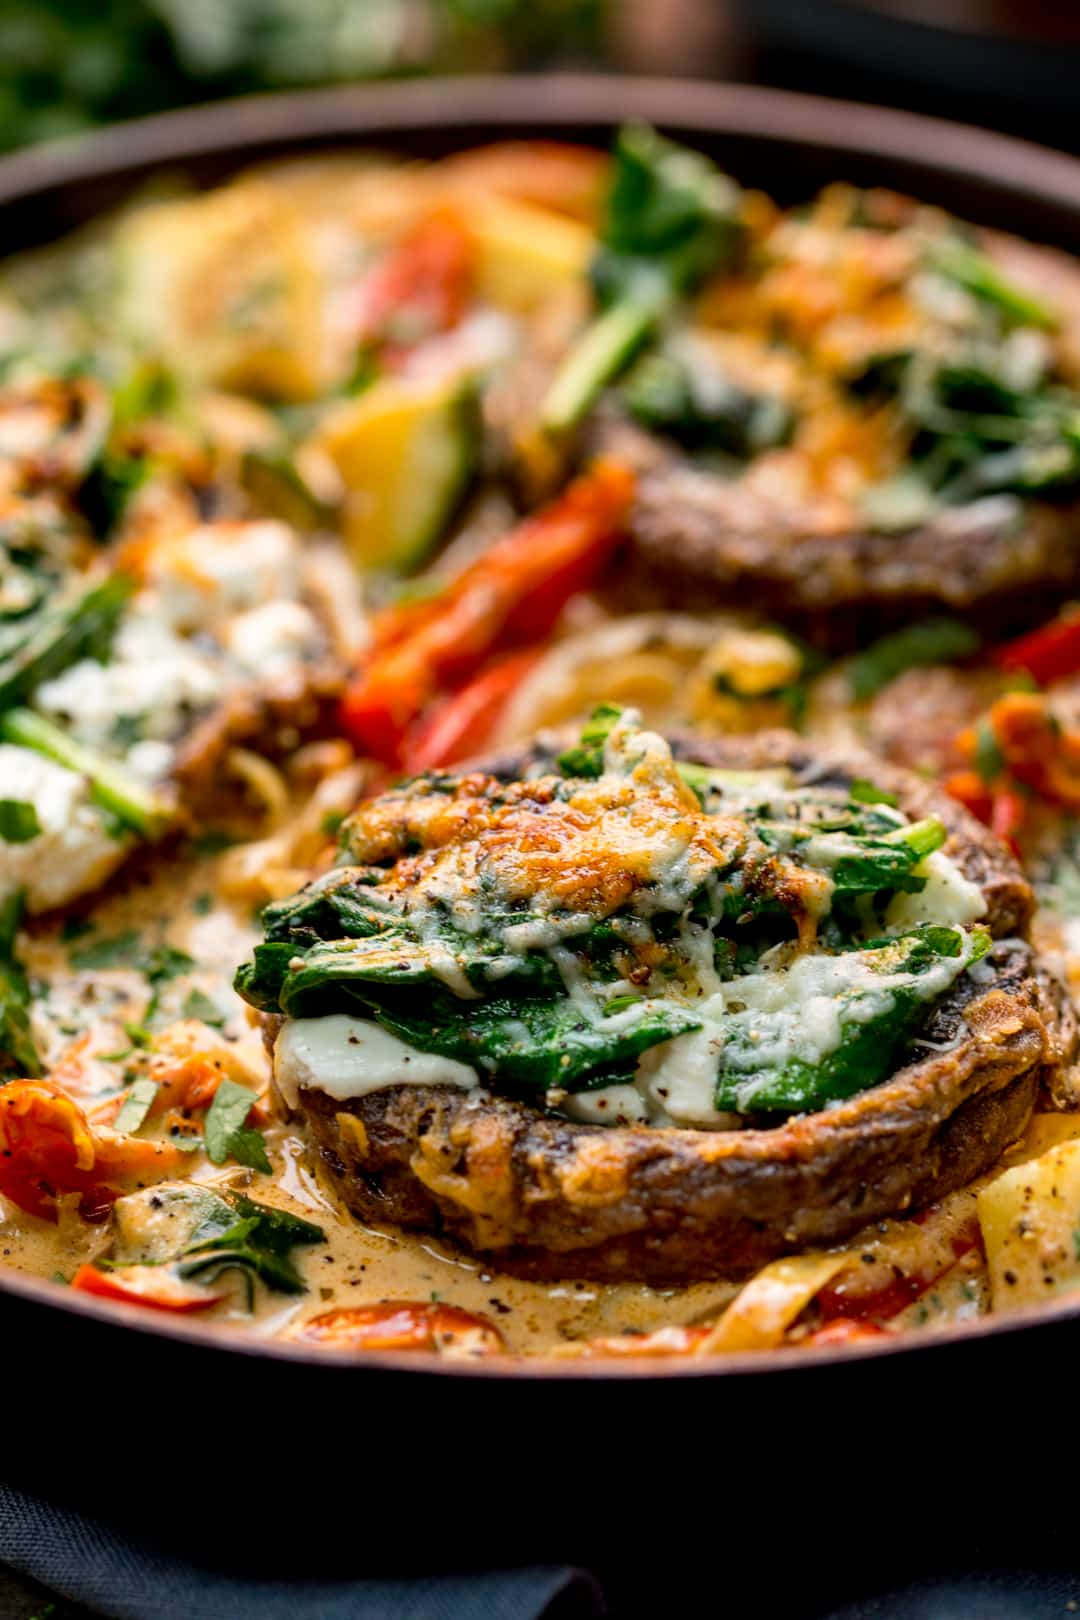 Extreme close up of Tuscan Style Stuffed Mushrooms in Creamy Sun Dried Tomato Sauce in a skillet